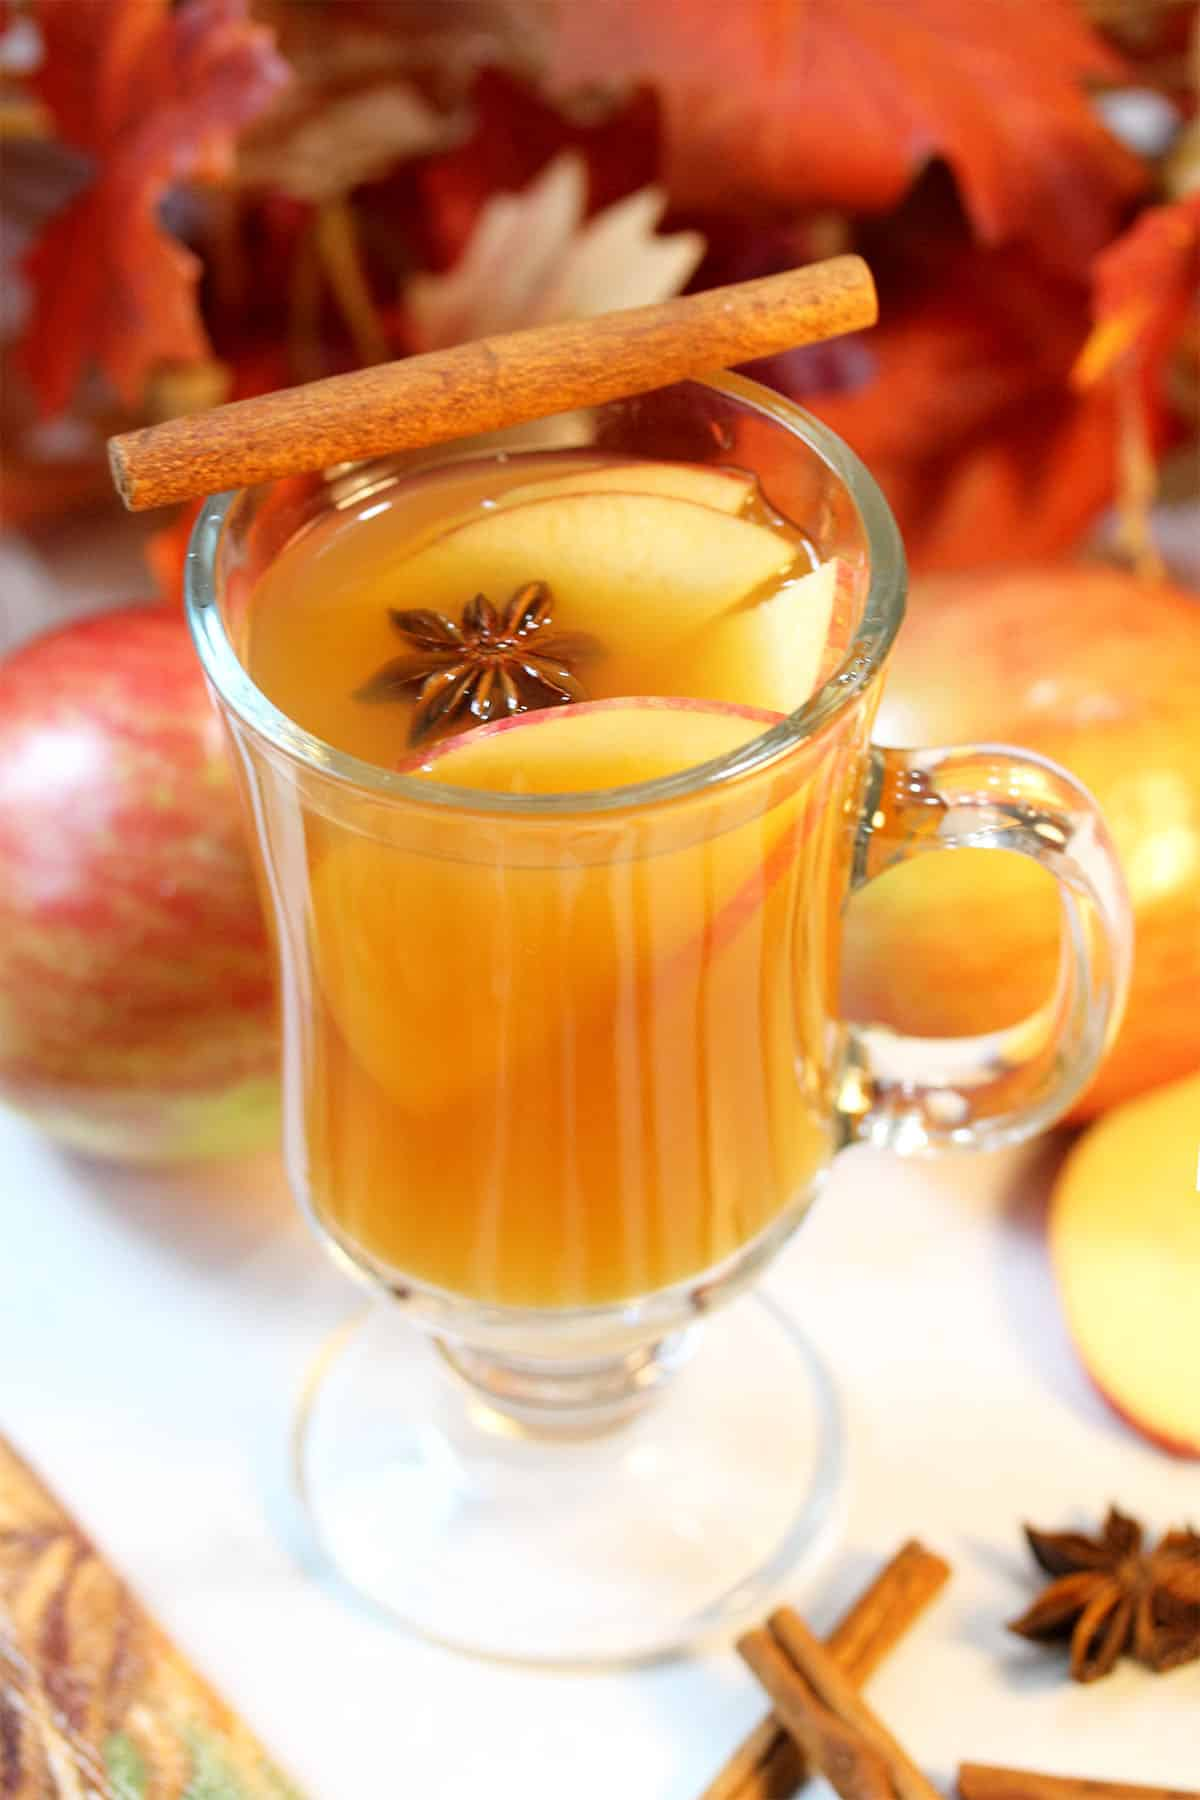 Mug of warm cider with apples and fall leaves in background.